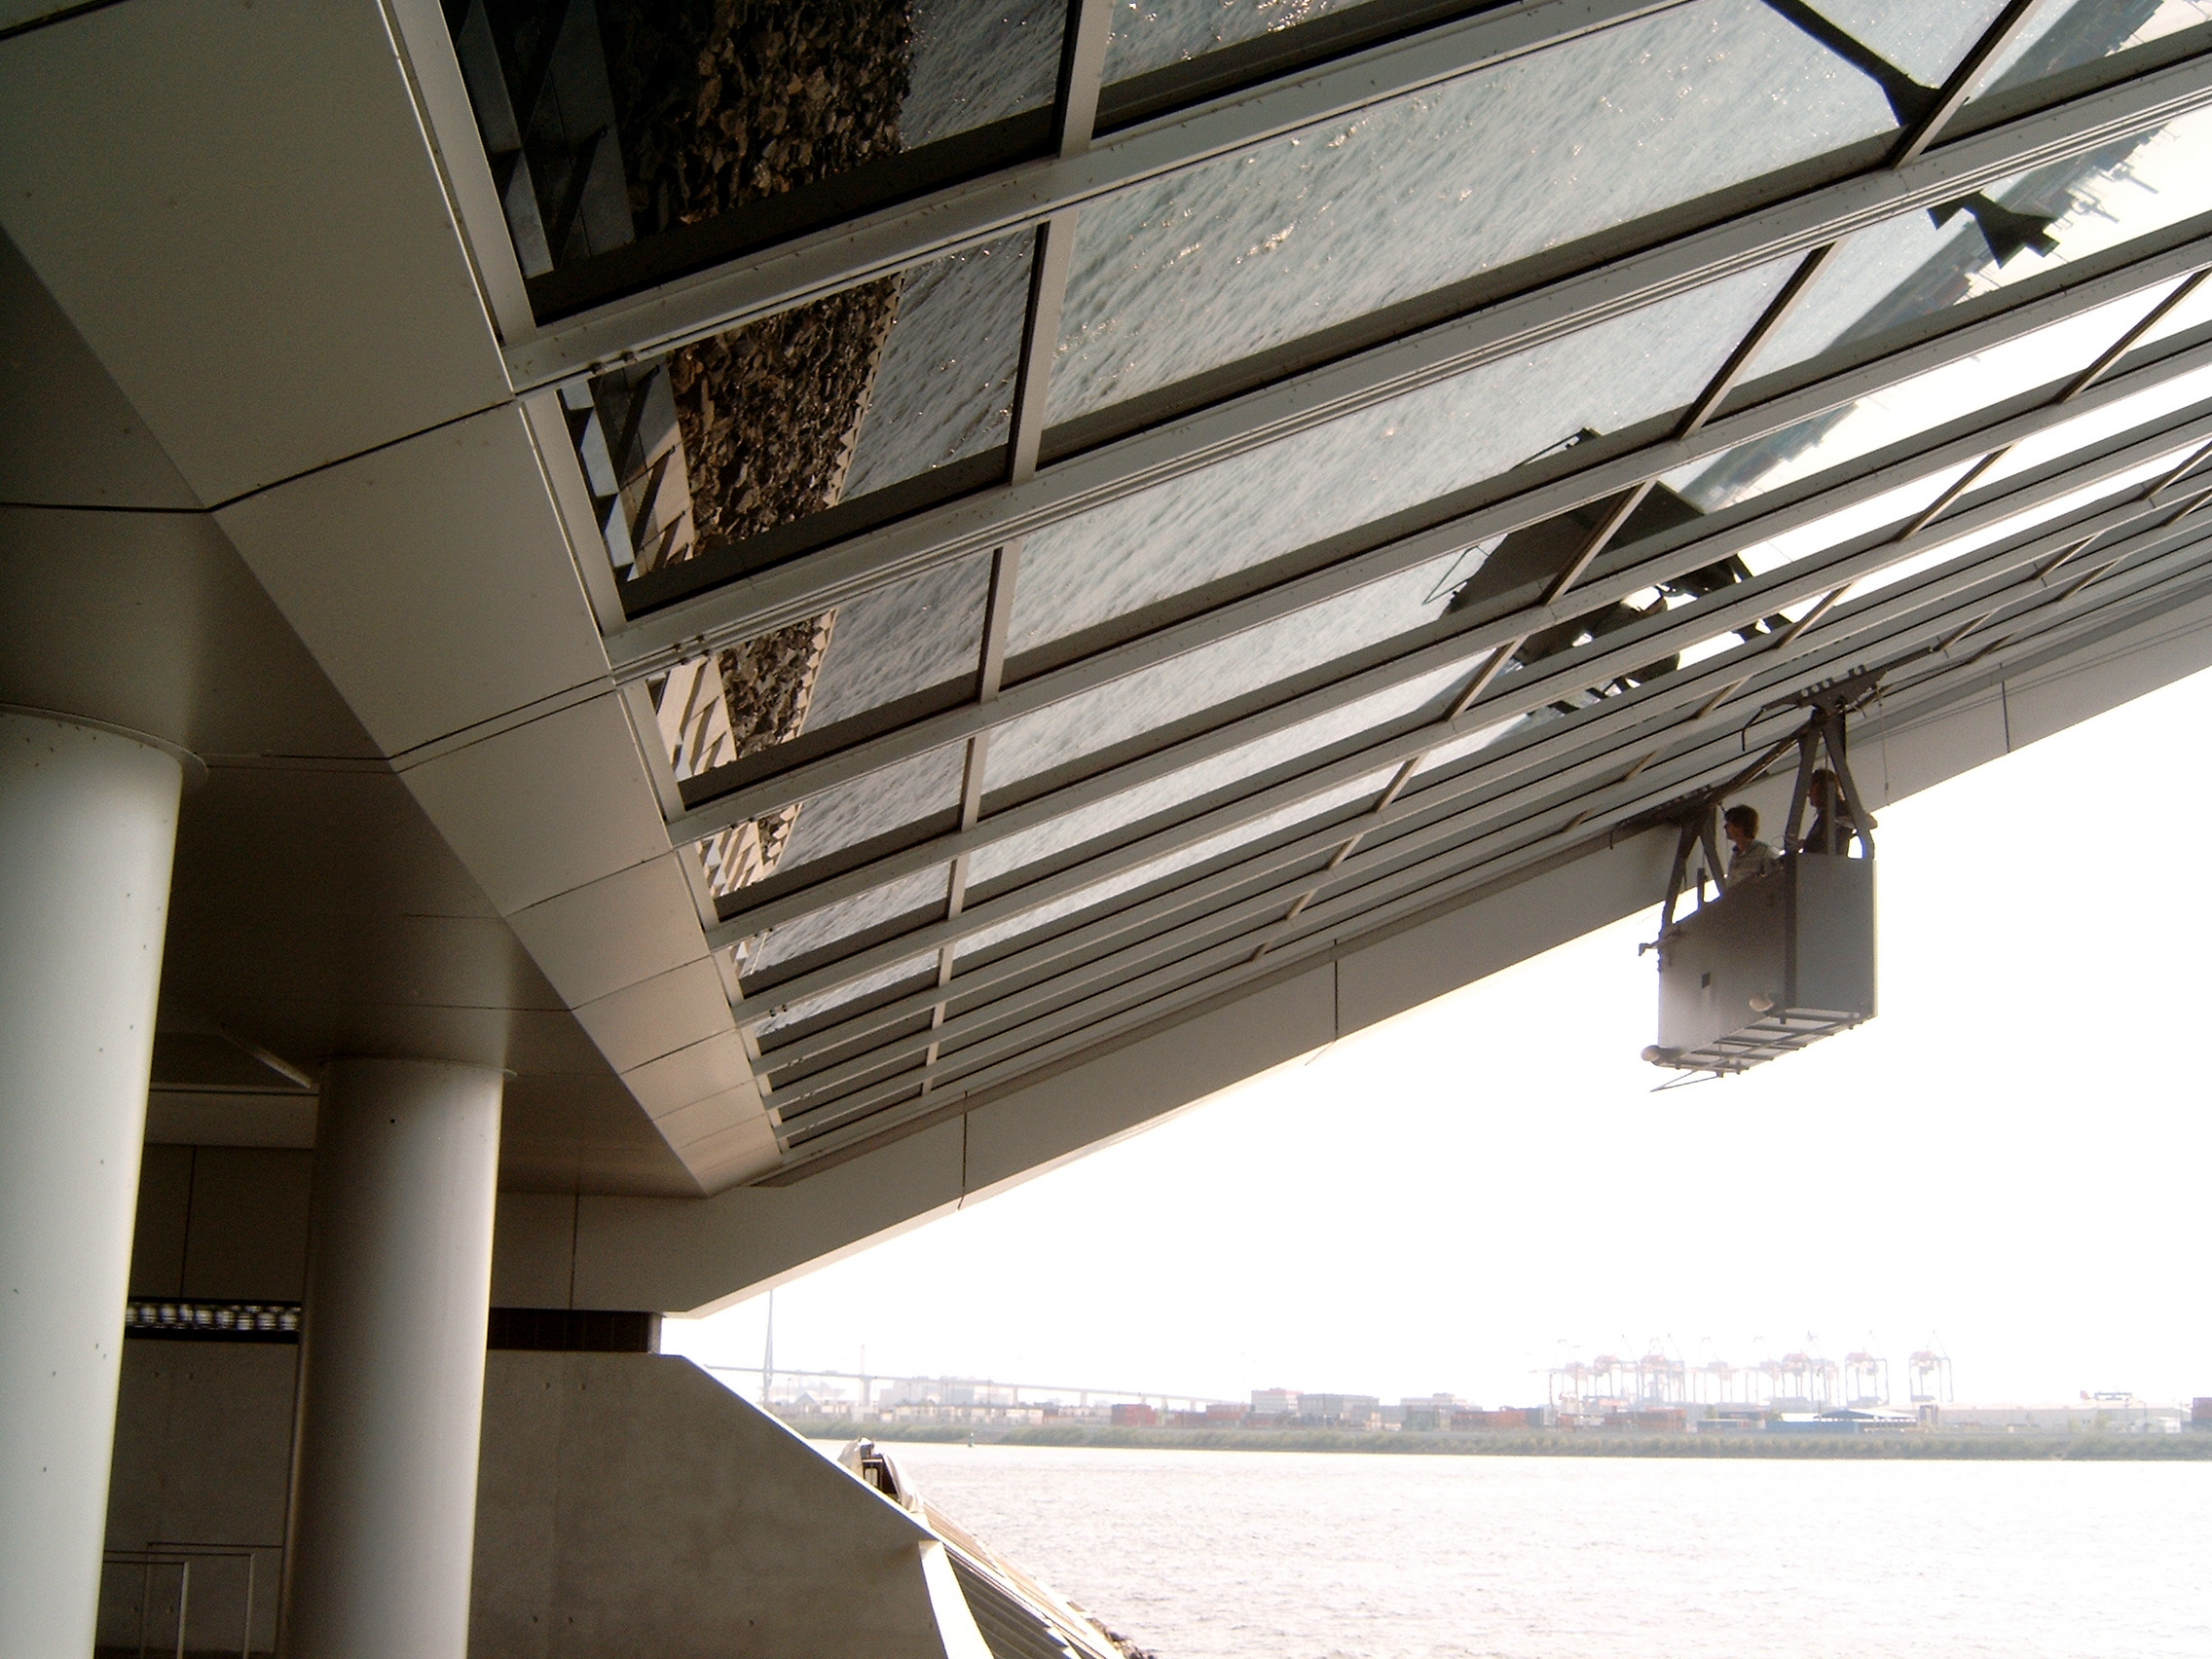 Above:To safely access the 66° inclined main elevation at Dockland building, a mullion guide track system is incorporated into the facade design along with special guide rollers in the BMU platform.